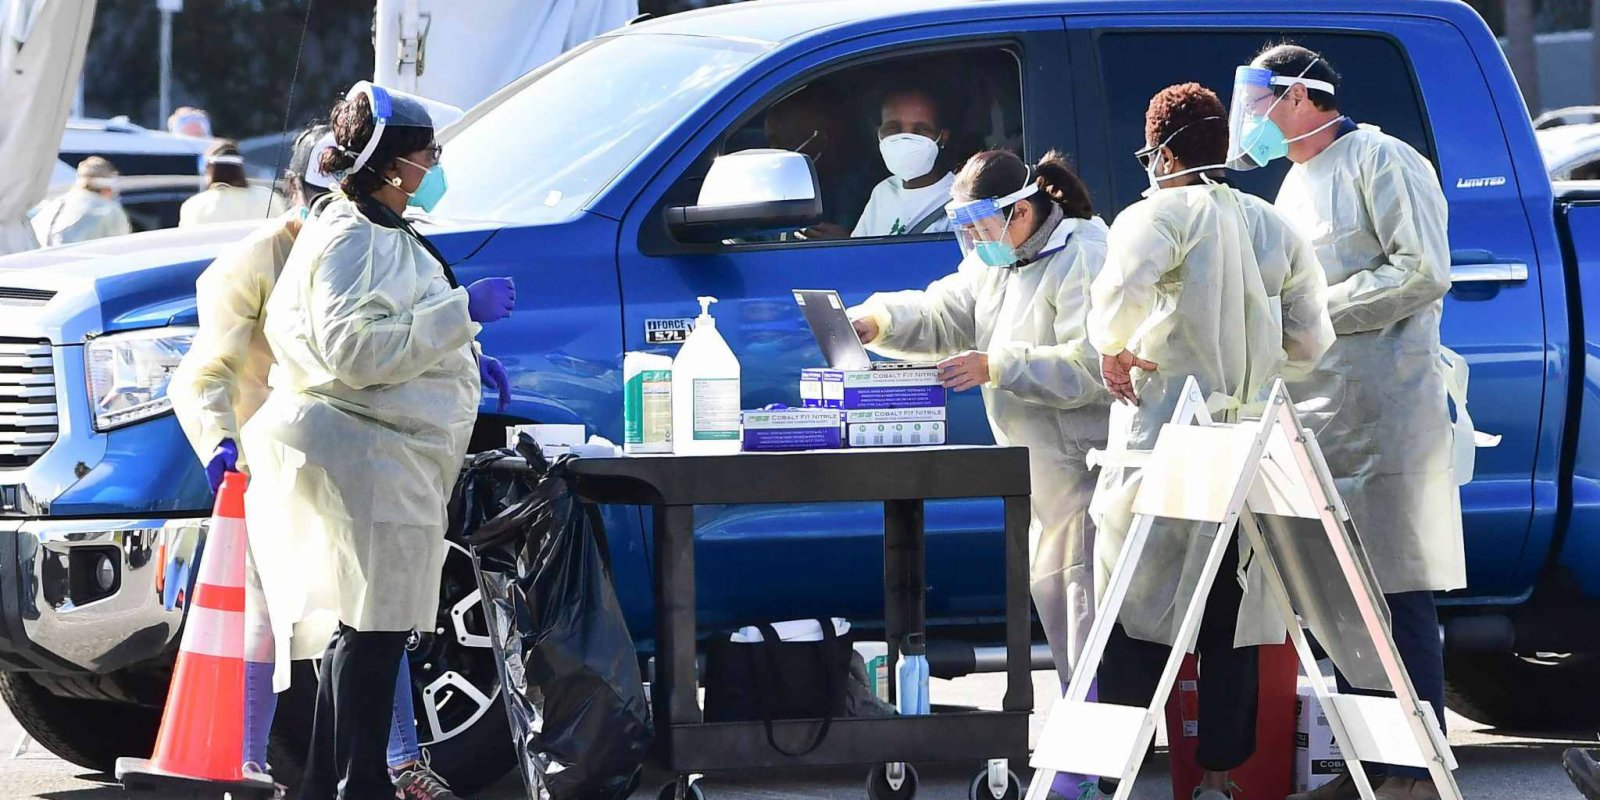 Nearly 9 in 10 Americans say the COVID-19 pandemic is not controlled: Washington Post